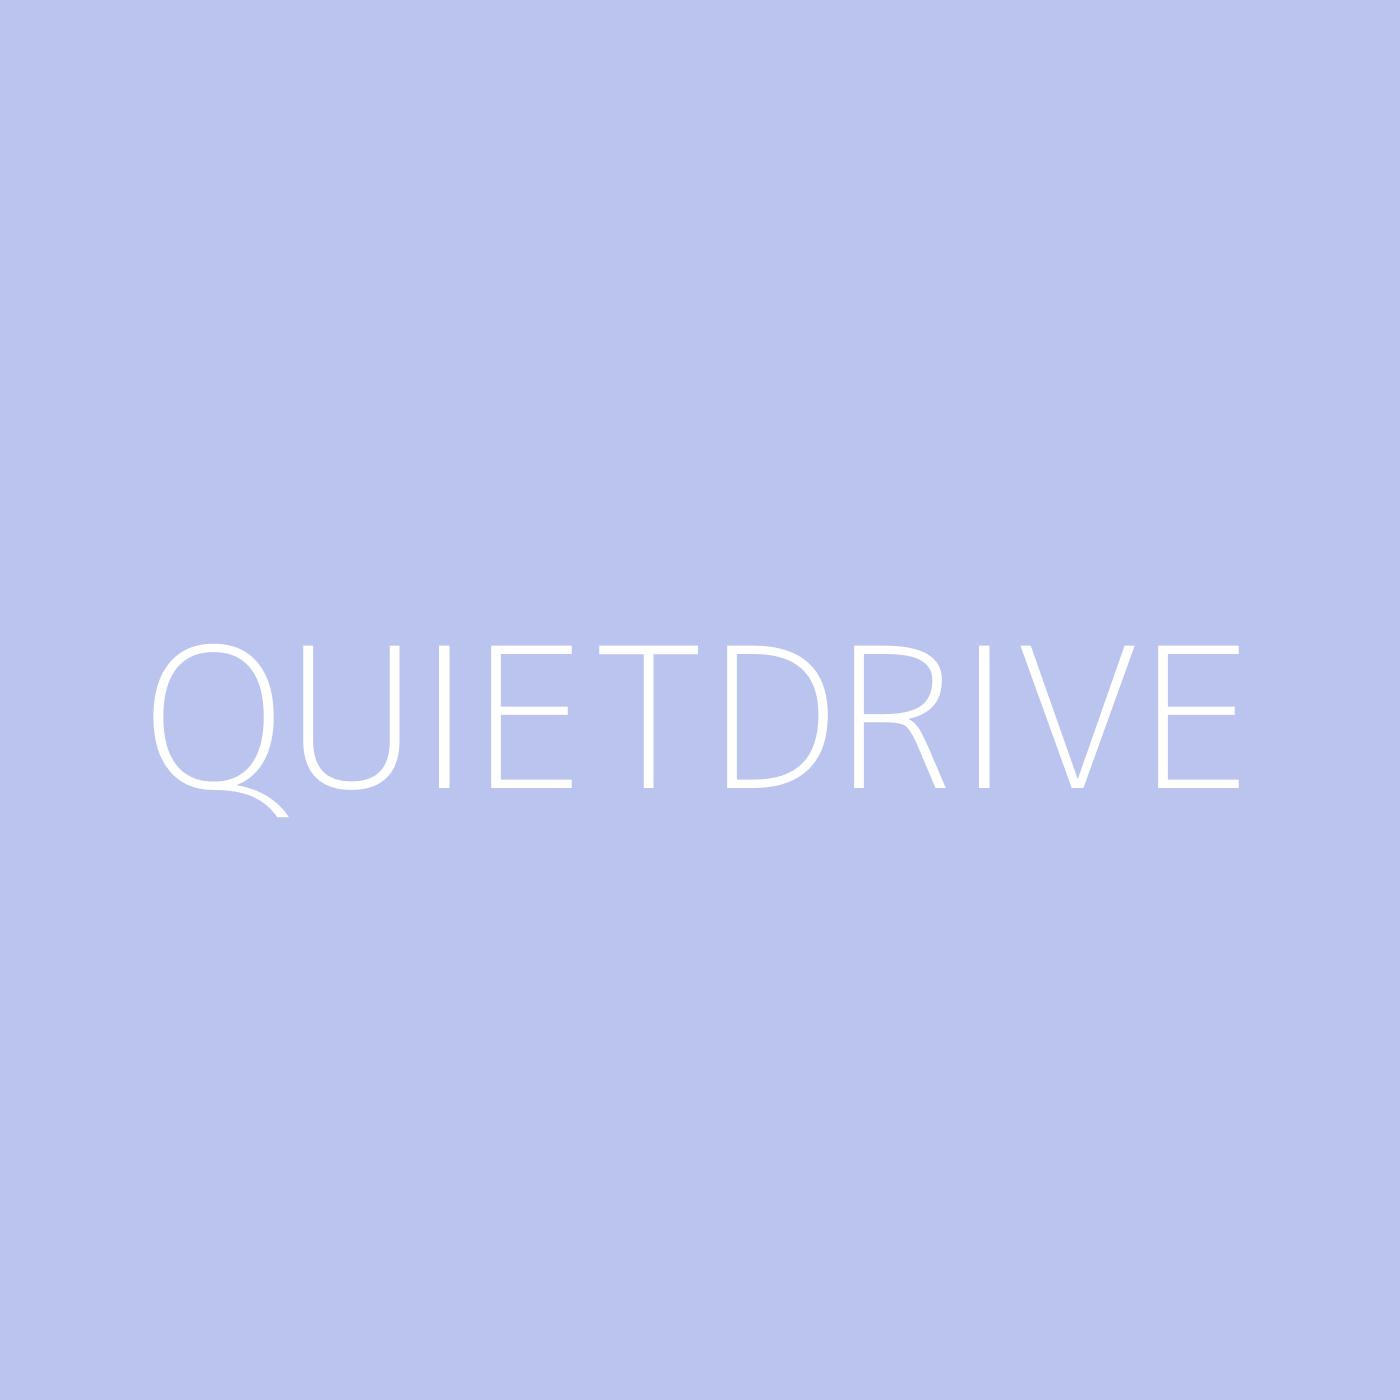 Quietdrive Playlist Artwork